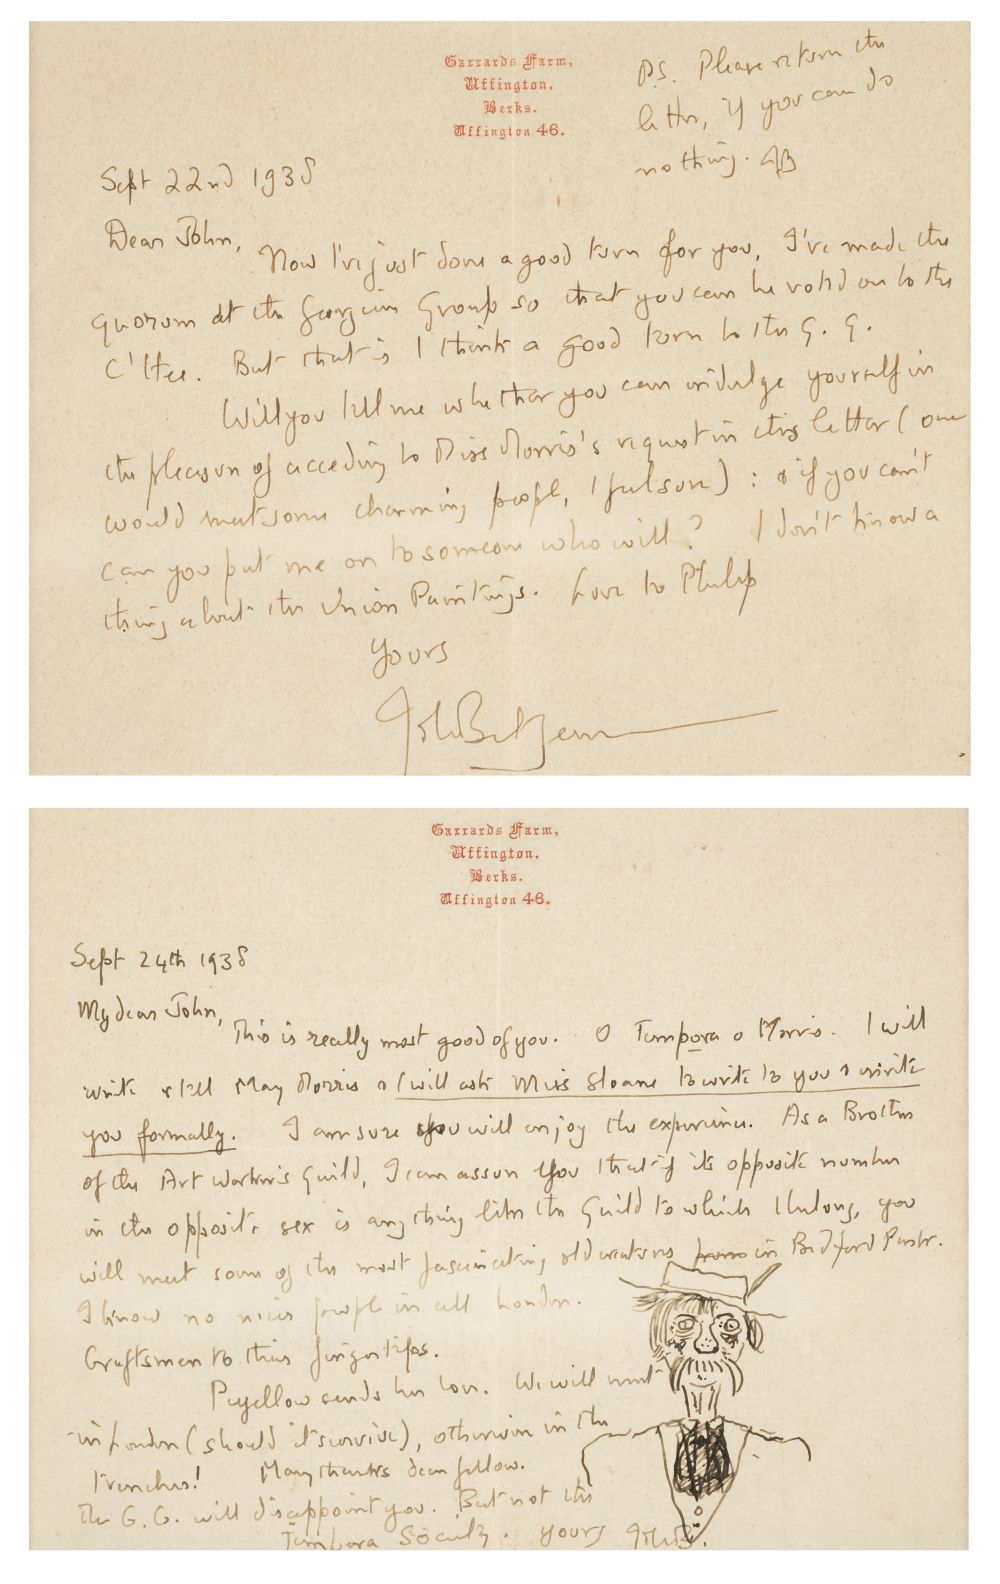 * Betjeman (John). Two autograph letters signed, 1938, with an original caricature